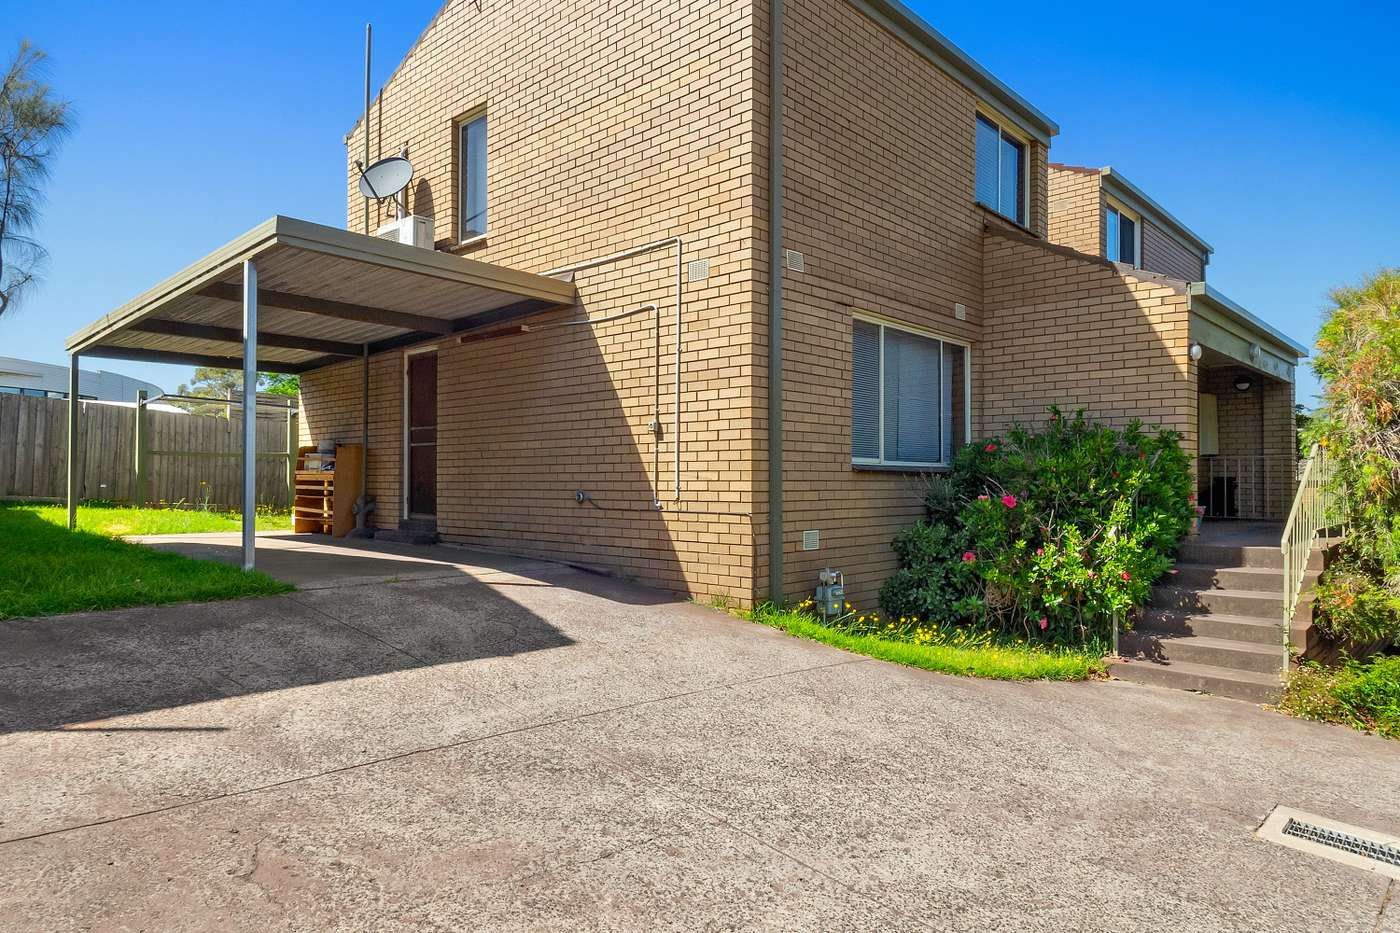 Main view of Homely house listing, 6/28 Lucerne Avenue, Mornington, VIC 3931